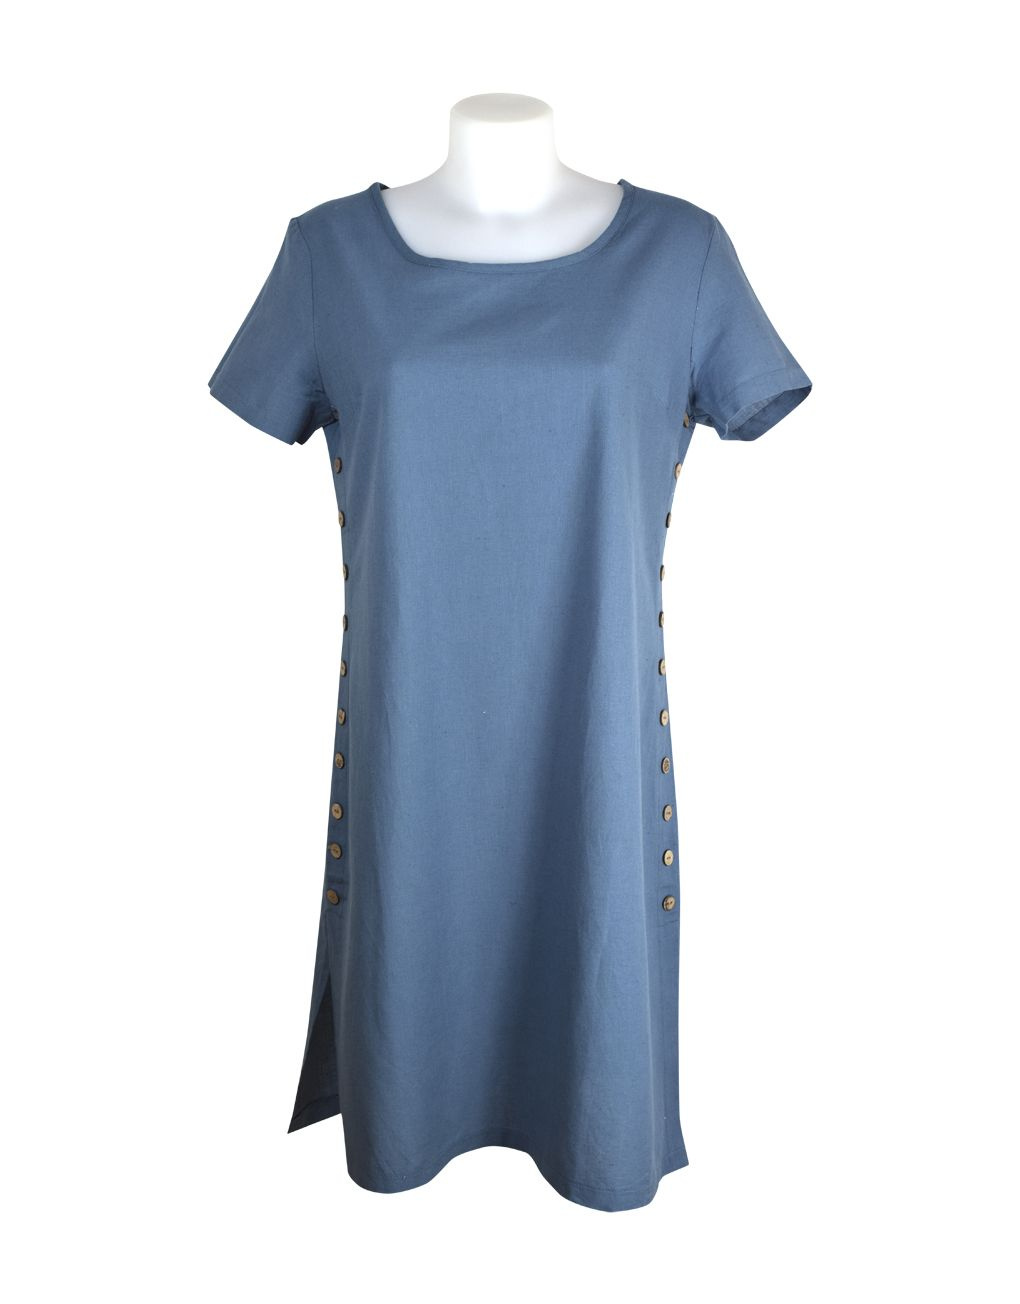 Alice Collins Kylie Dress Indigo Blue 12 M